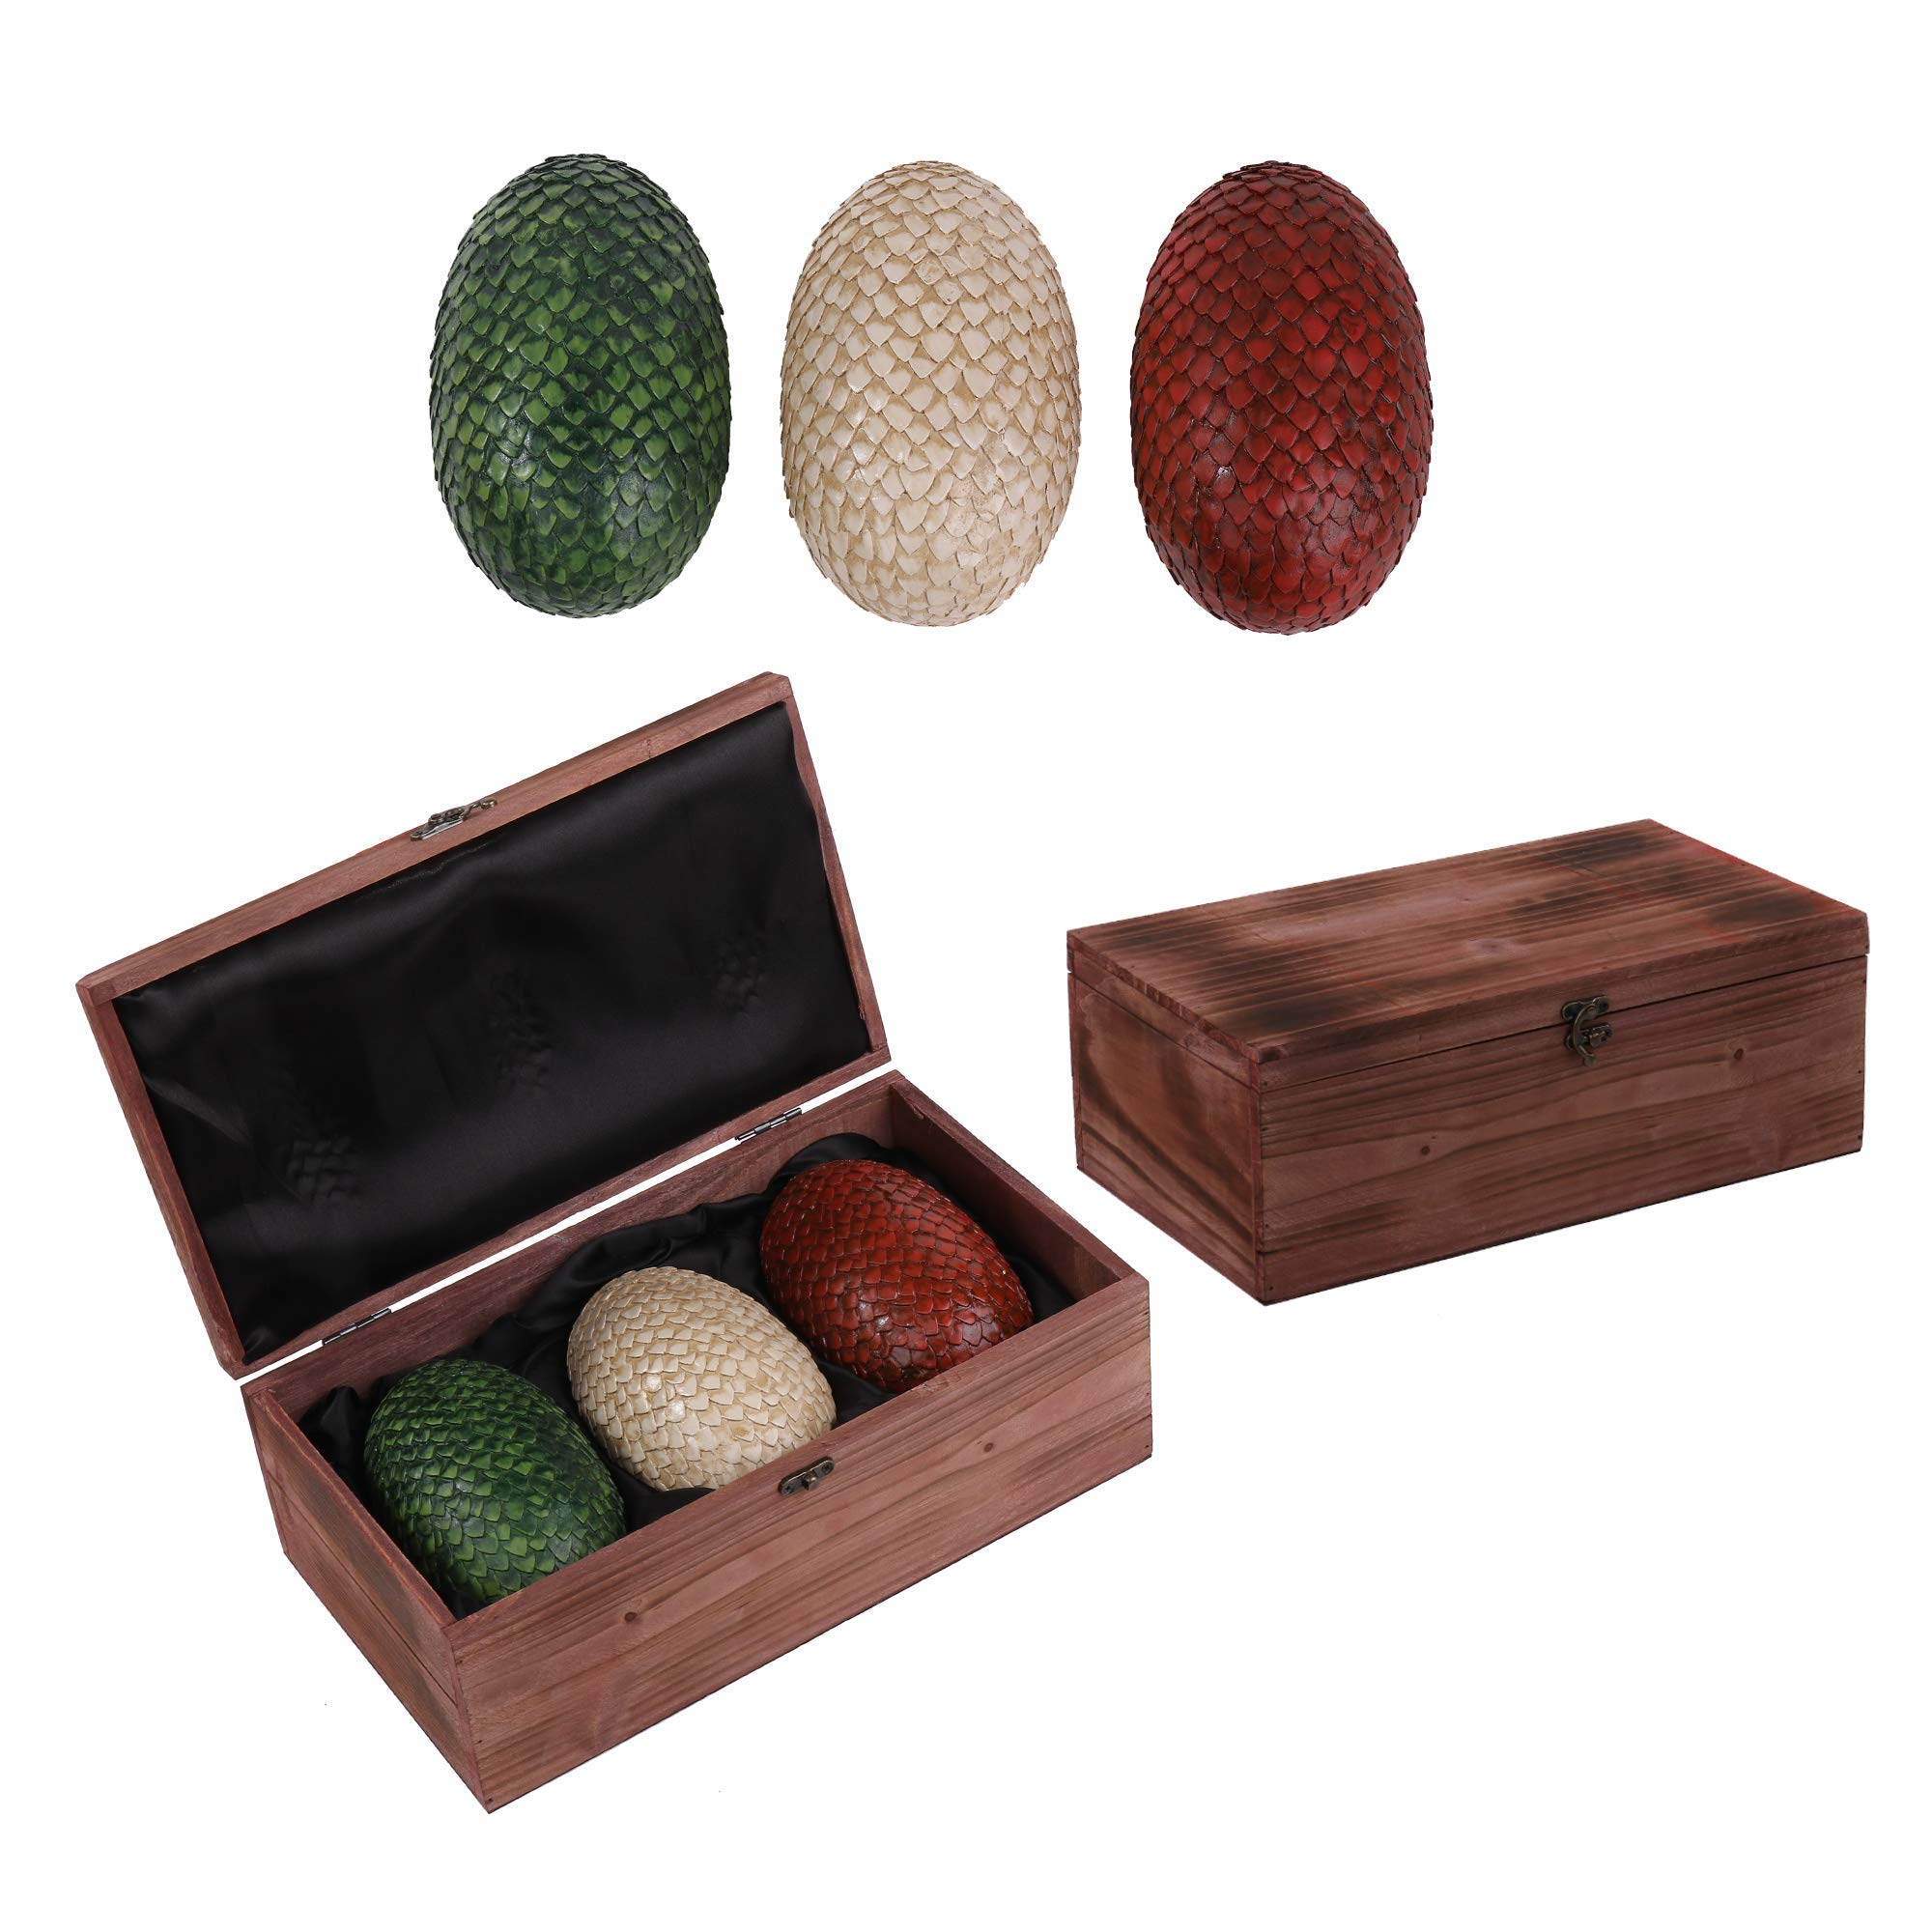 FOLE Game of Thrones Dragon Eggs in Wooden Crate - Set of 3 - GOT Decor Merchandise Collectible Gift - 6 Inches Tall Eggs - Deluxe